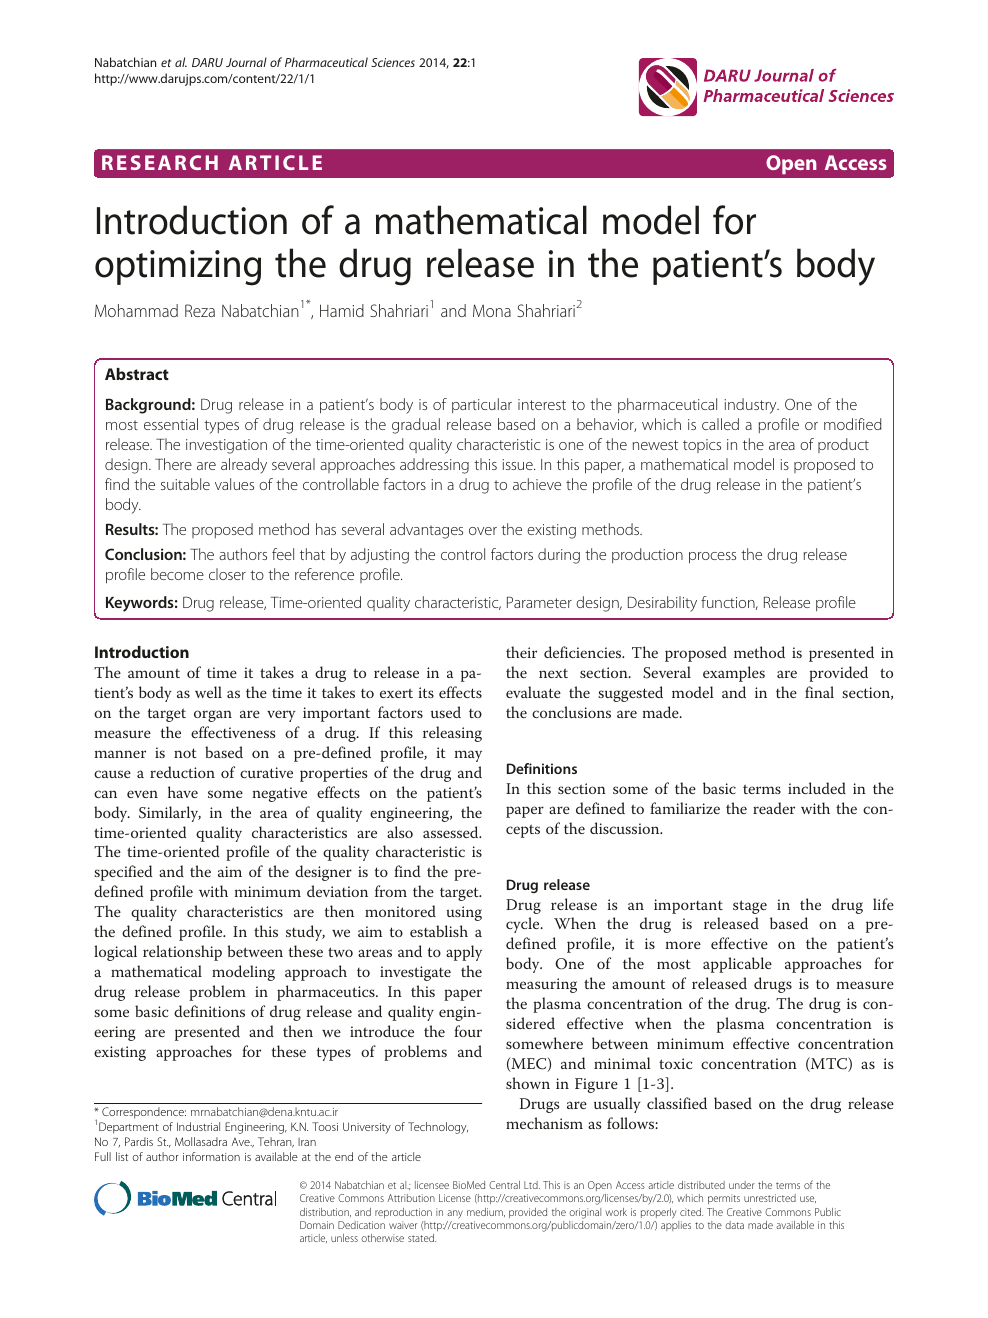 Introduction of a mathematical model for optimizing the drug